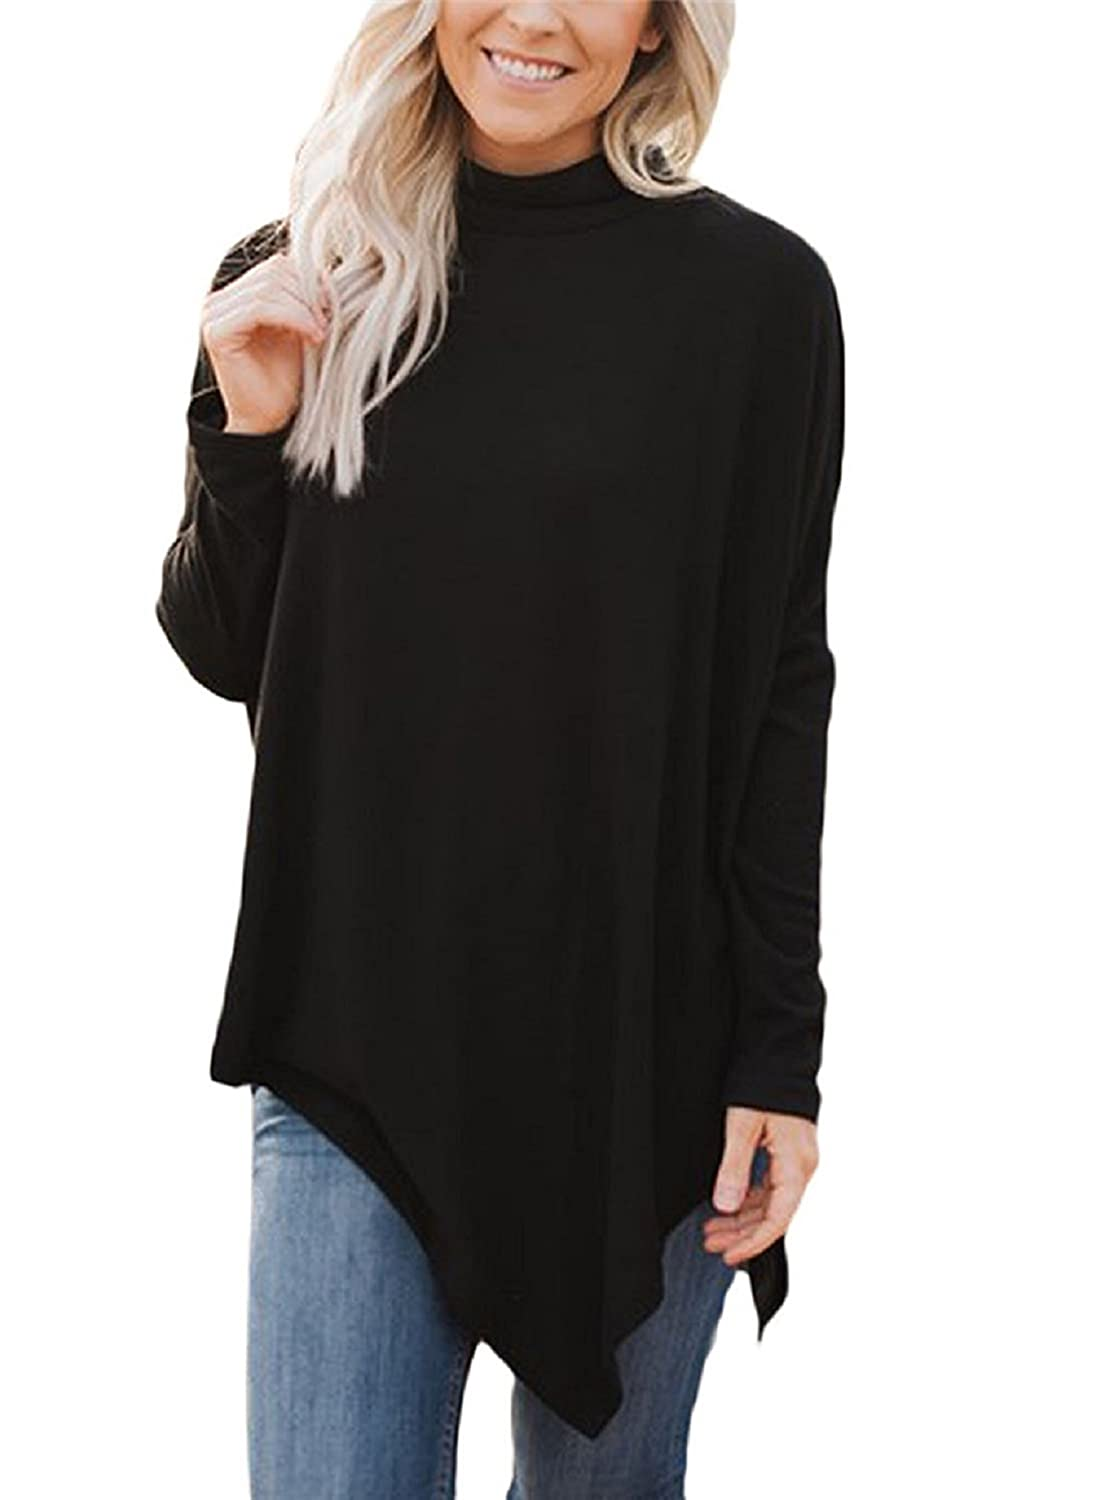 516fc939 Feature: Long sleeve tops, Pullover tunic tops, Asymmetrical hi-low hem t- shirts, ...